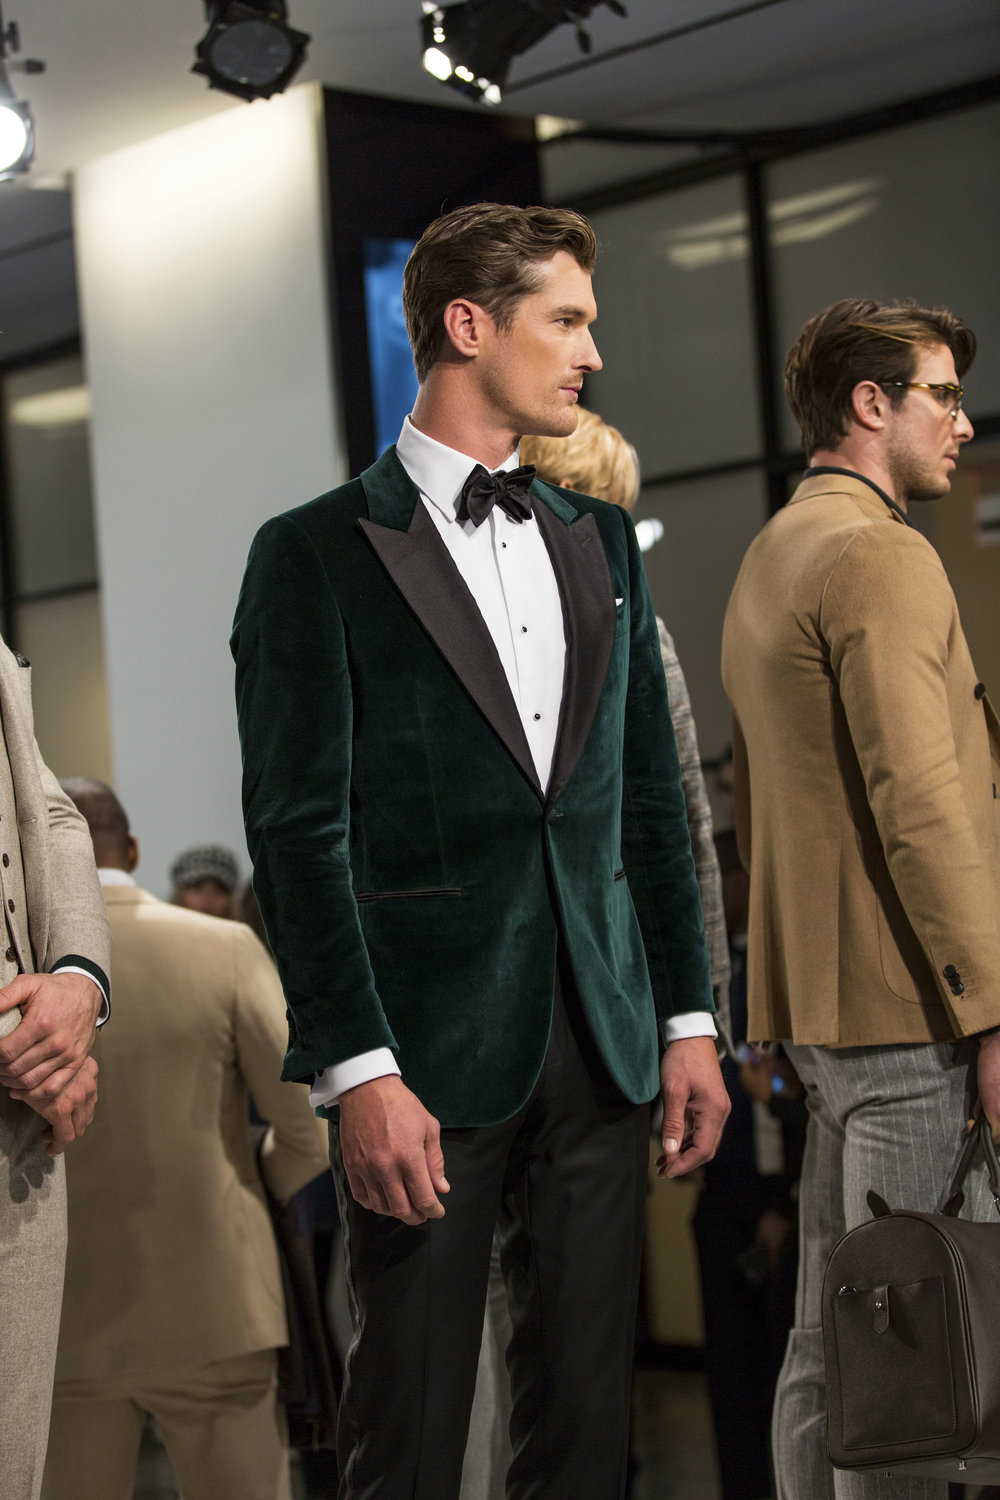 SUITSUPPLY-FALL -WINTER-NYFWM2018-MENS-COLLECTION- AW18-NYFWM.jpg